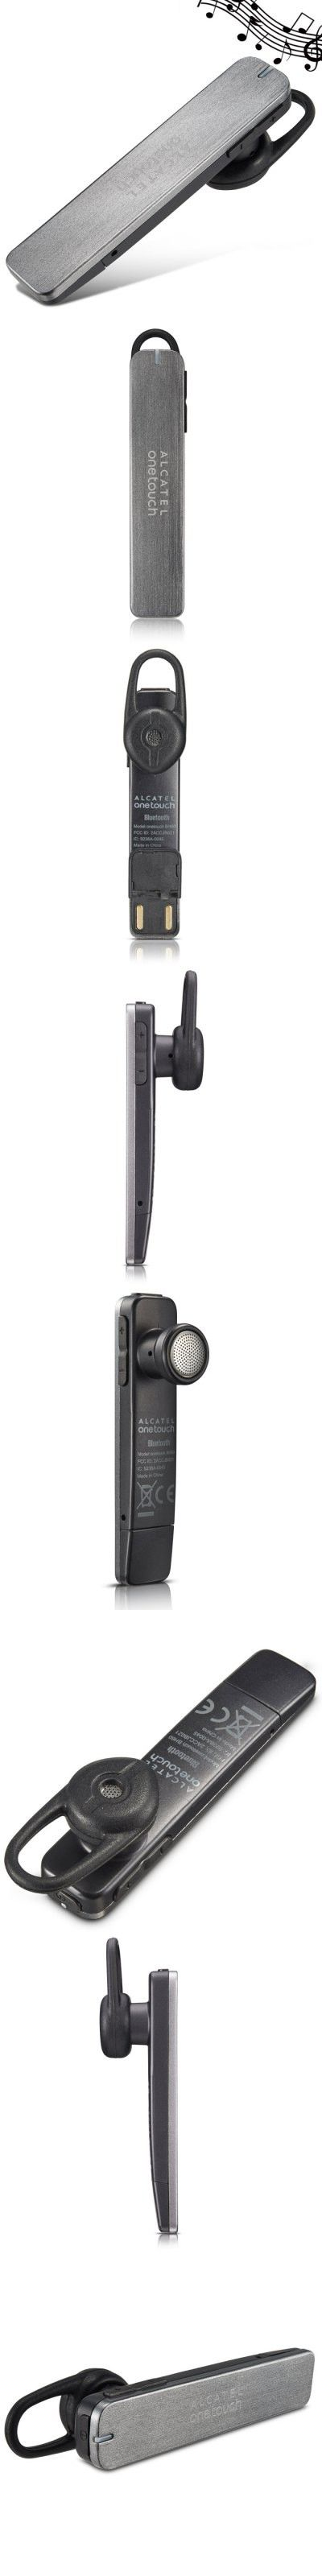 iPhone Headsets | ALCATEL Onetouch BH60 Bluetooth Headset Built-in Mic USB Interface In-ear Earphone $17.13